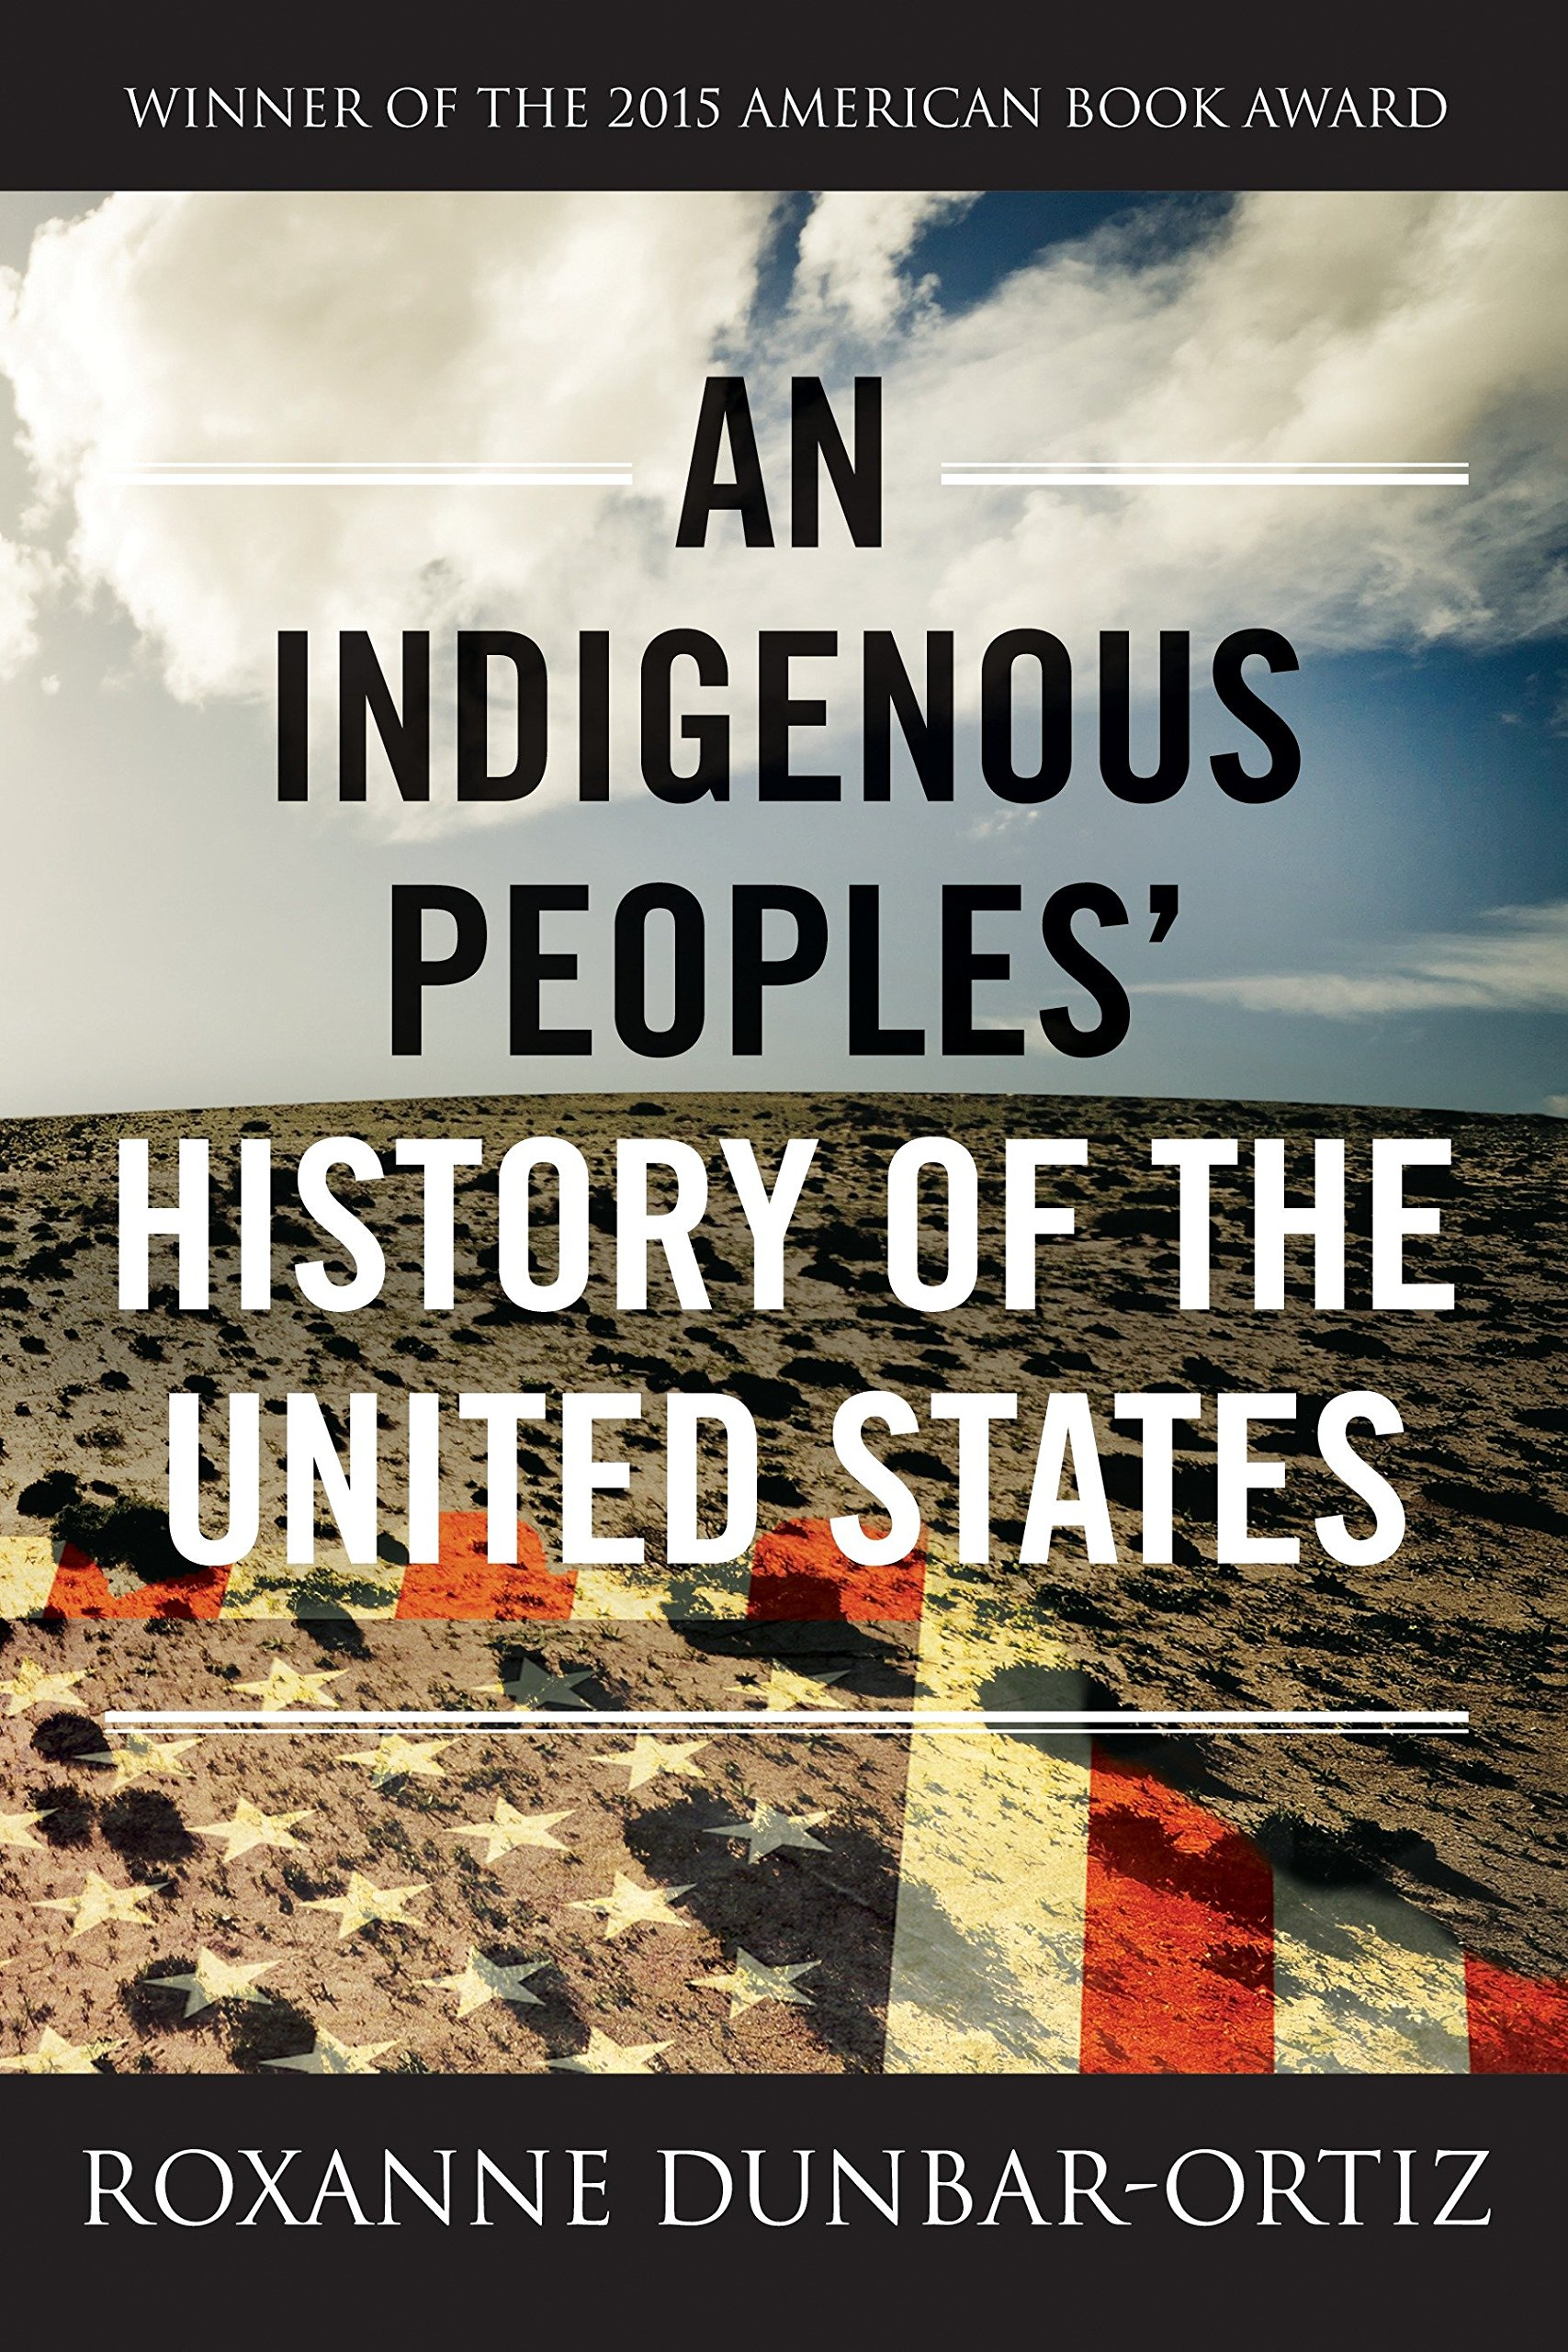 """Today in the United States, there are more than five hundred federally recognized Indigenous nations comprising nearly three million people, descendants of the fifteen million Native people who once inhabited this land. The centuries-long genocidal program of the US settler-colonial regimen has largely been omitted from history. Now, for the first time, acclaimed historian and activist Roxanne Dunbar-Ortiz offers a history of the United States told from the perspective of Indigenous peoples and reveals  how Native Americans, for centuries, actively resisted expansion of the US empire.  In  An Indigenous Peoples' History of the United States , Dunbar-Ortiz adroitly challenges the founding myth of the United States and shows how policy against the Indigenous peoples was colonialist and designed to seize the territories of the original inhabitants, displacing or eliminating them. And as Dunbar-Ortiz reveals, this policy was praised in popular culture, through writers like James Fenimore Cooper and Walt Whitman, and in the highest offices of government and the military. Shockingly, as the genocidal policy reached its zenith under President Andrew Jackson, its ruthlessness was best articulated by US Army general Thomas S. Jesup, who, in 1836, wrote of the Seminoles: """"The country can be rid of them only by exterminating them.""""   Spanning more than four hundred years, this classic bottom-up peoples' history radically reframes US history and explodes the silences that have haunted our national narrative."""